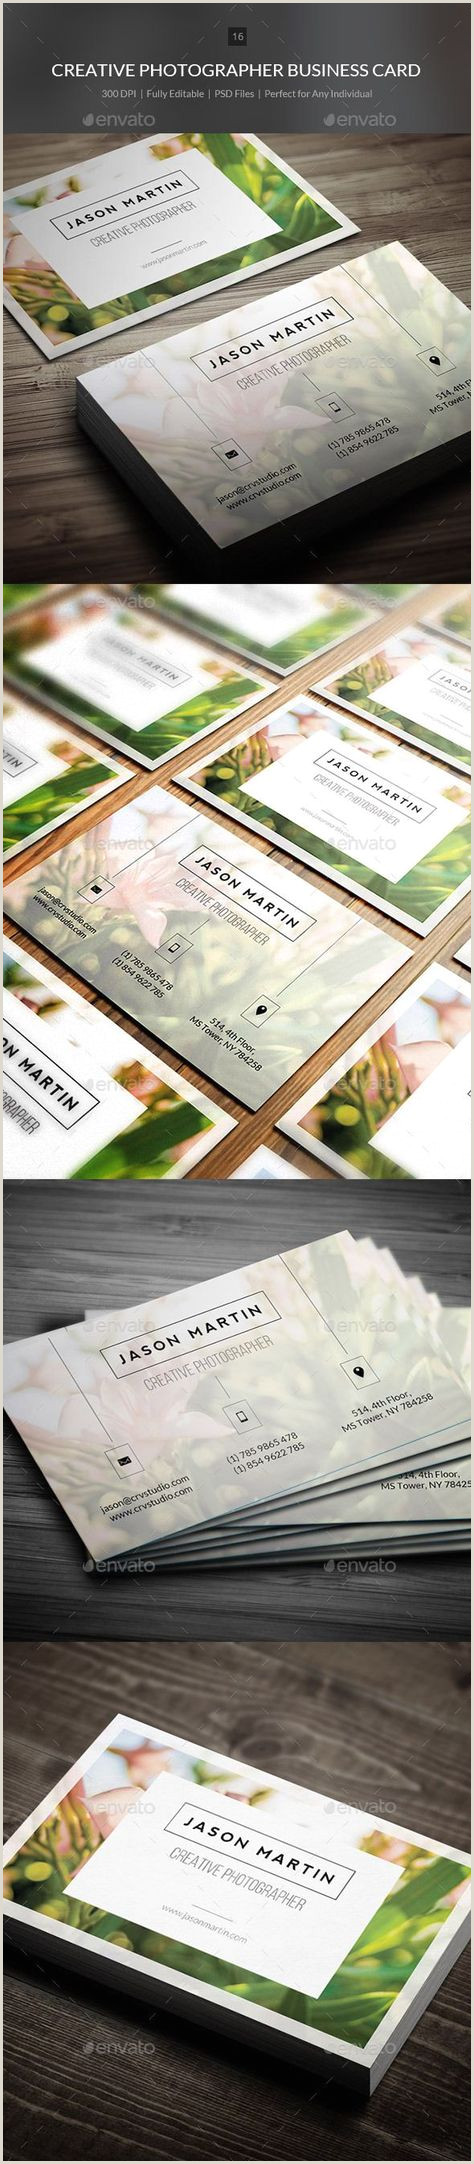 Unique Business Cards Ideas 40 Trendy Ideas Photography Business Cards Template Creative